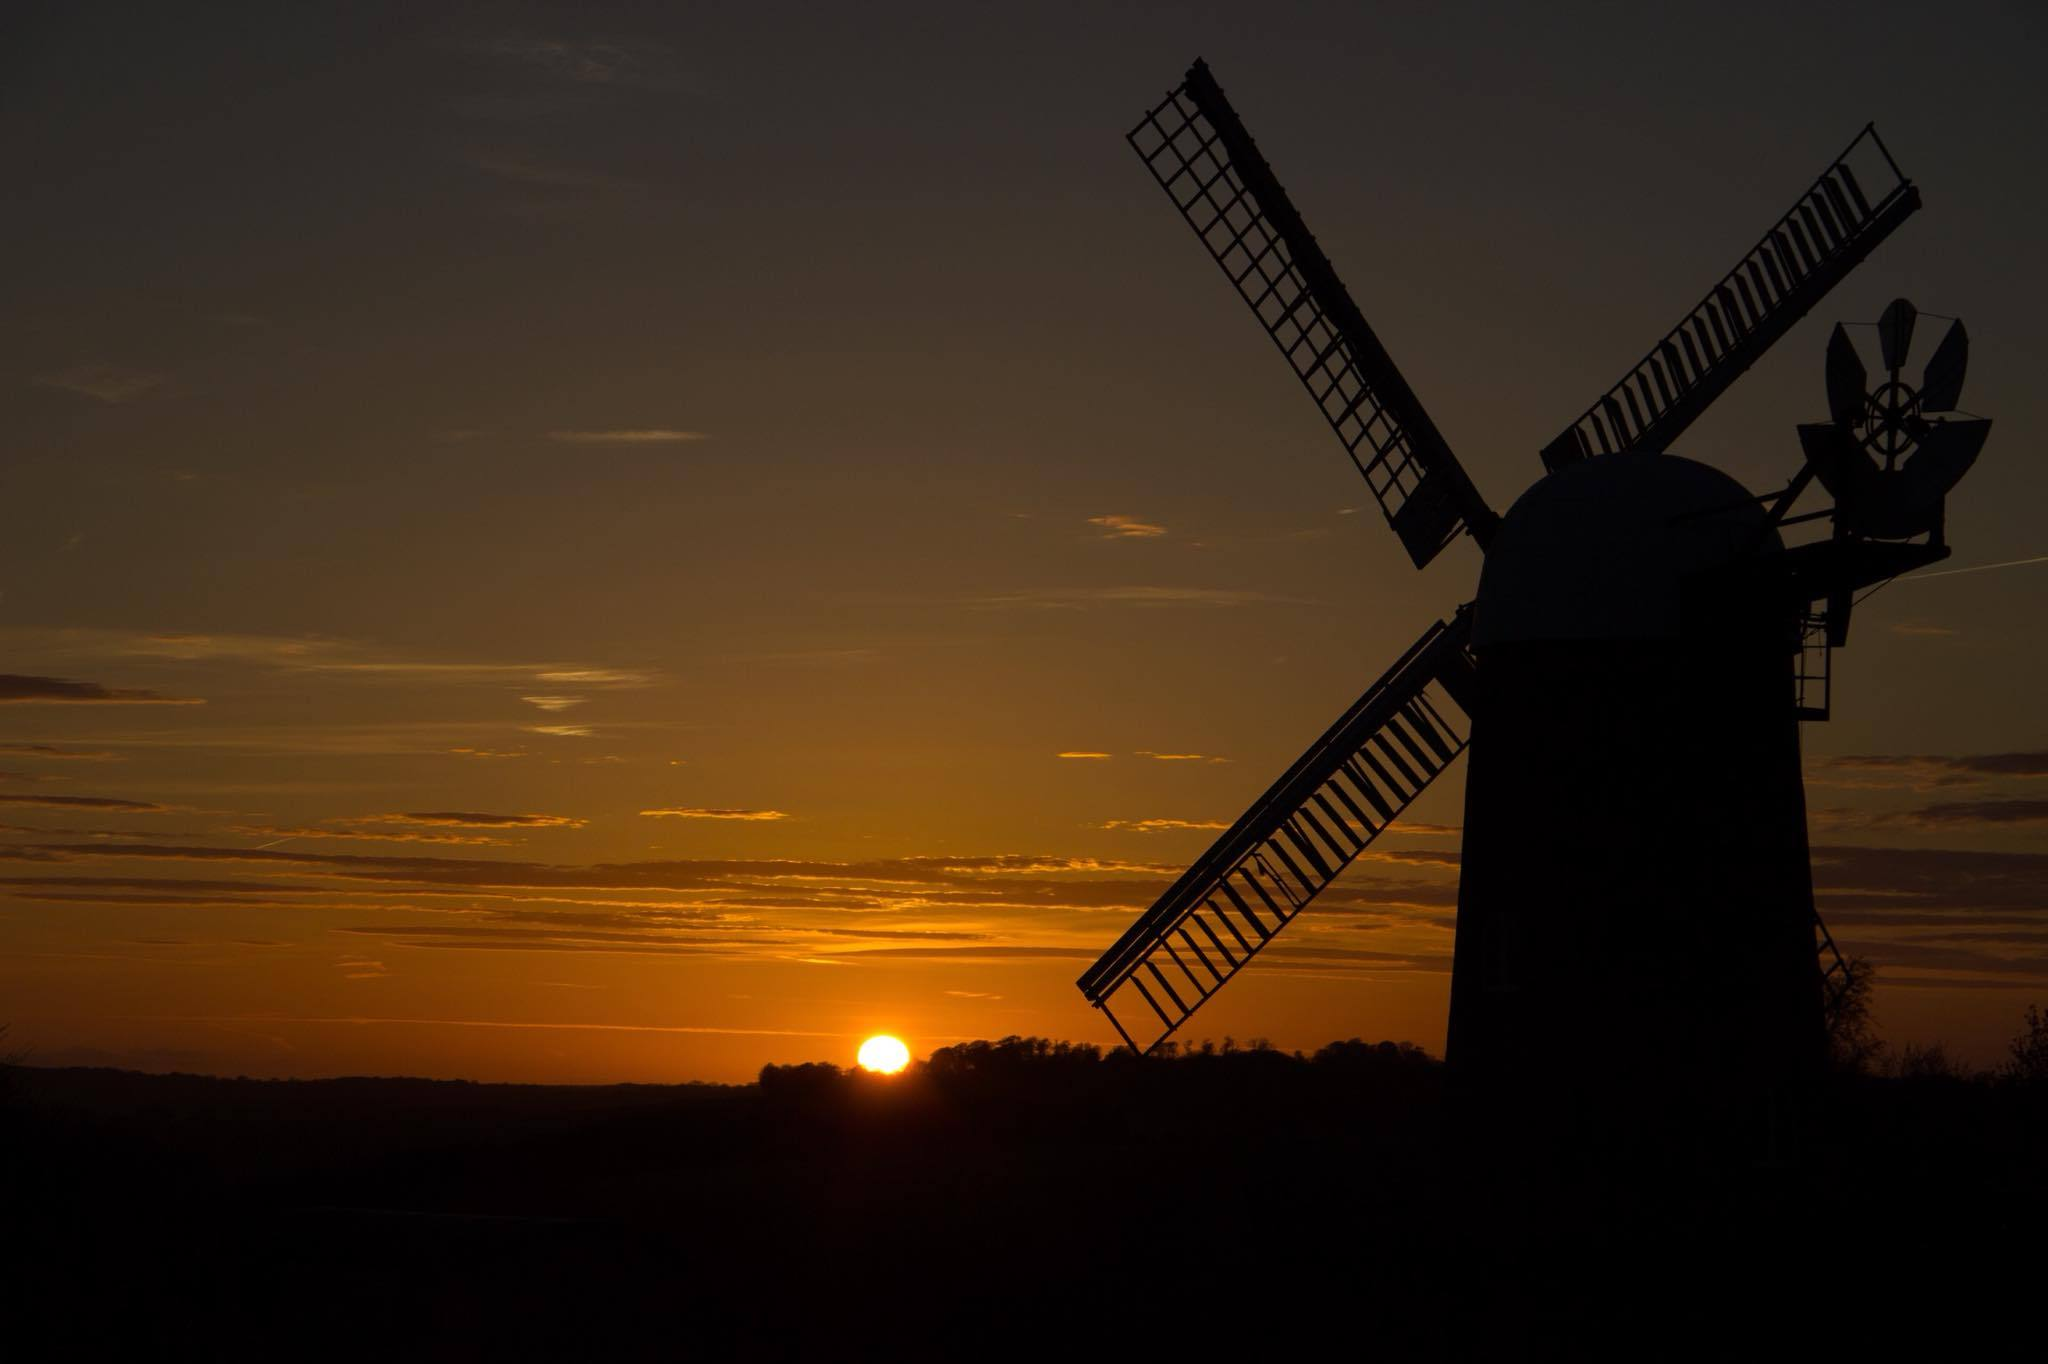 Sunset at Wilton Windmill by Neil Pickin.